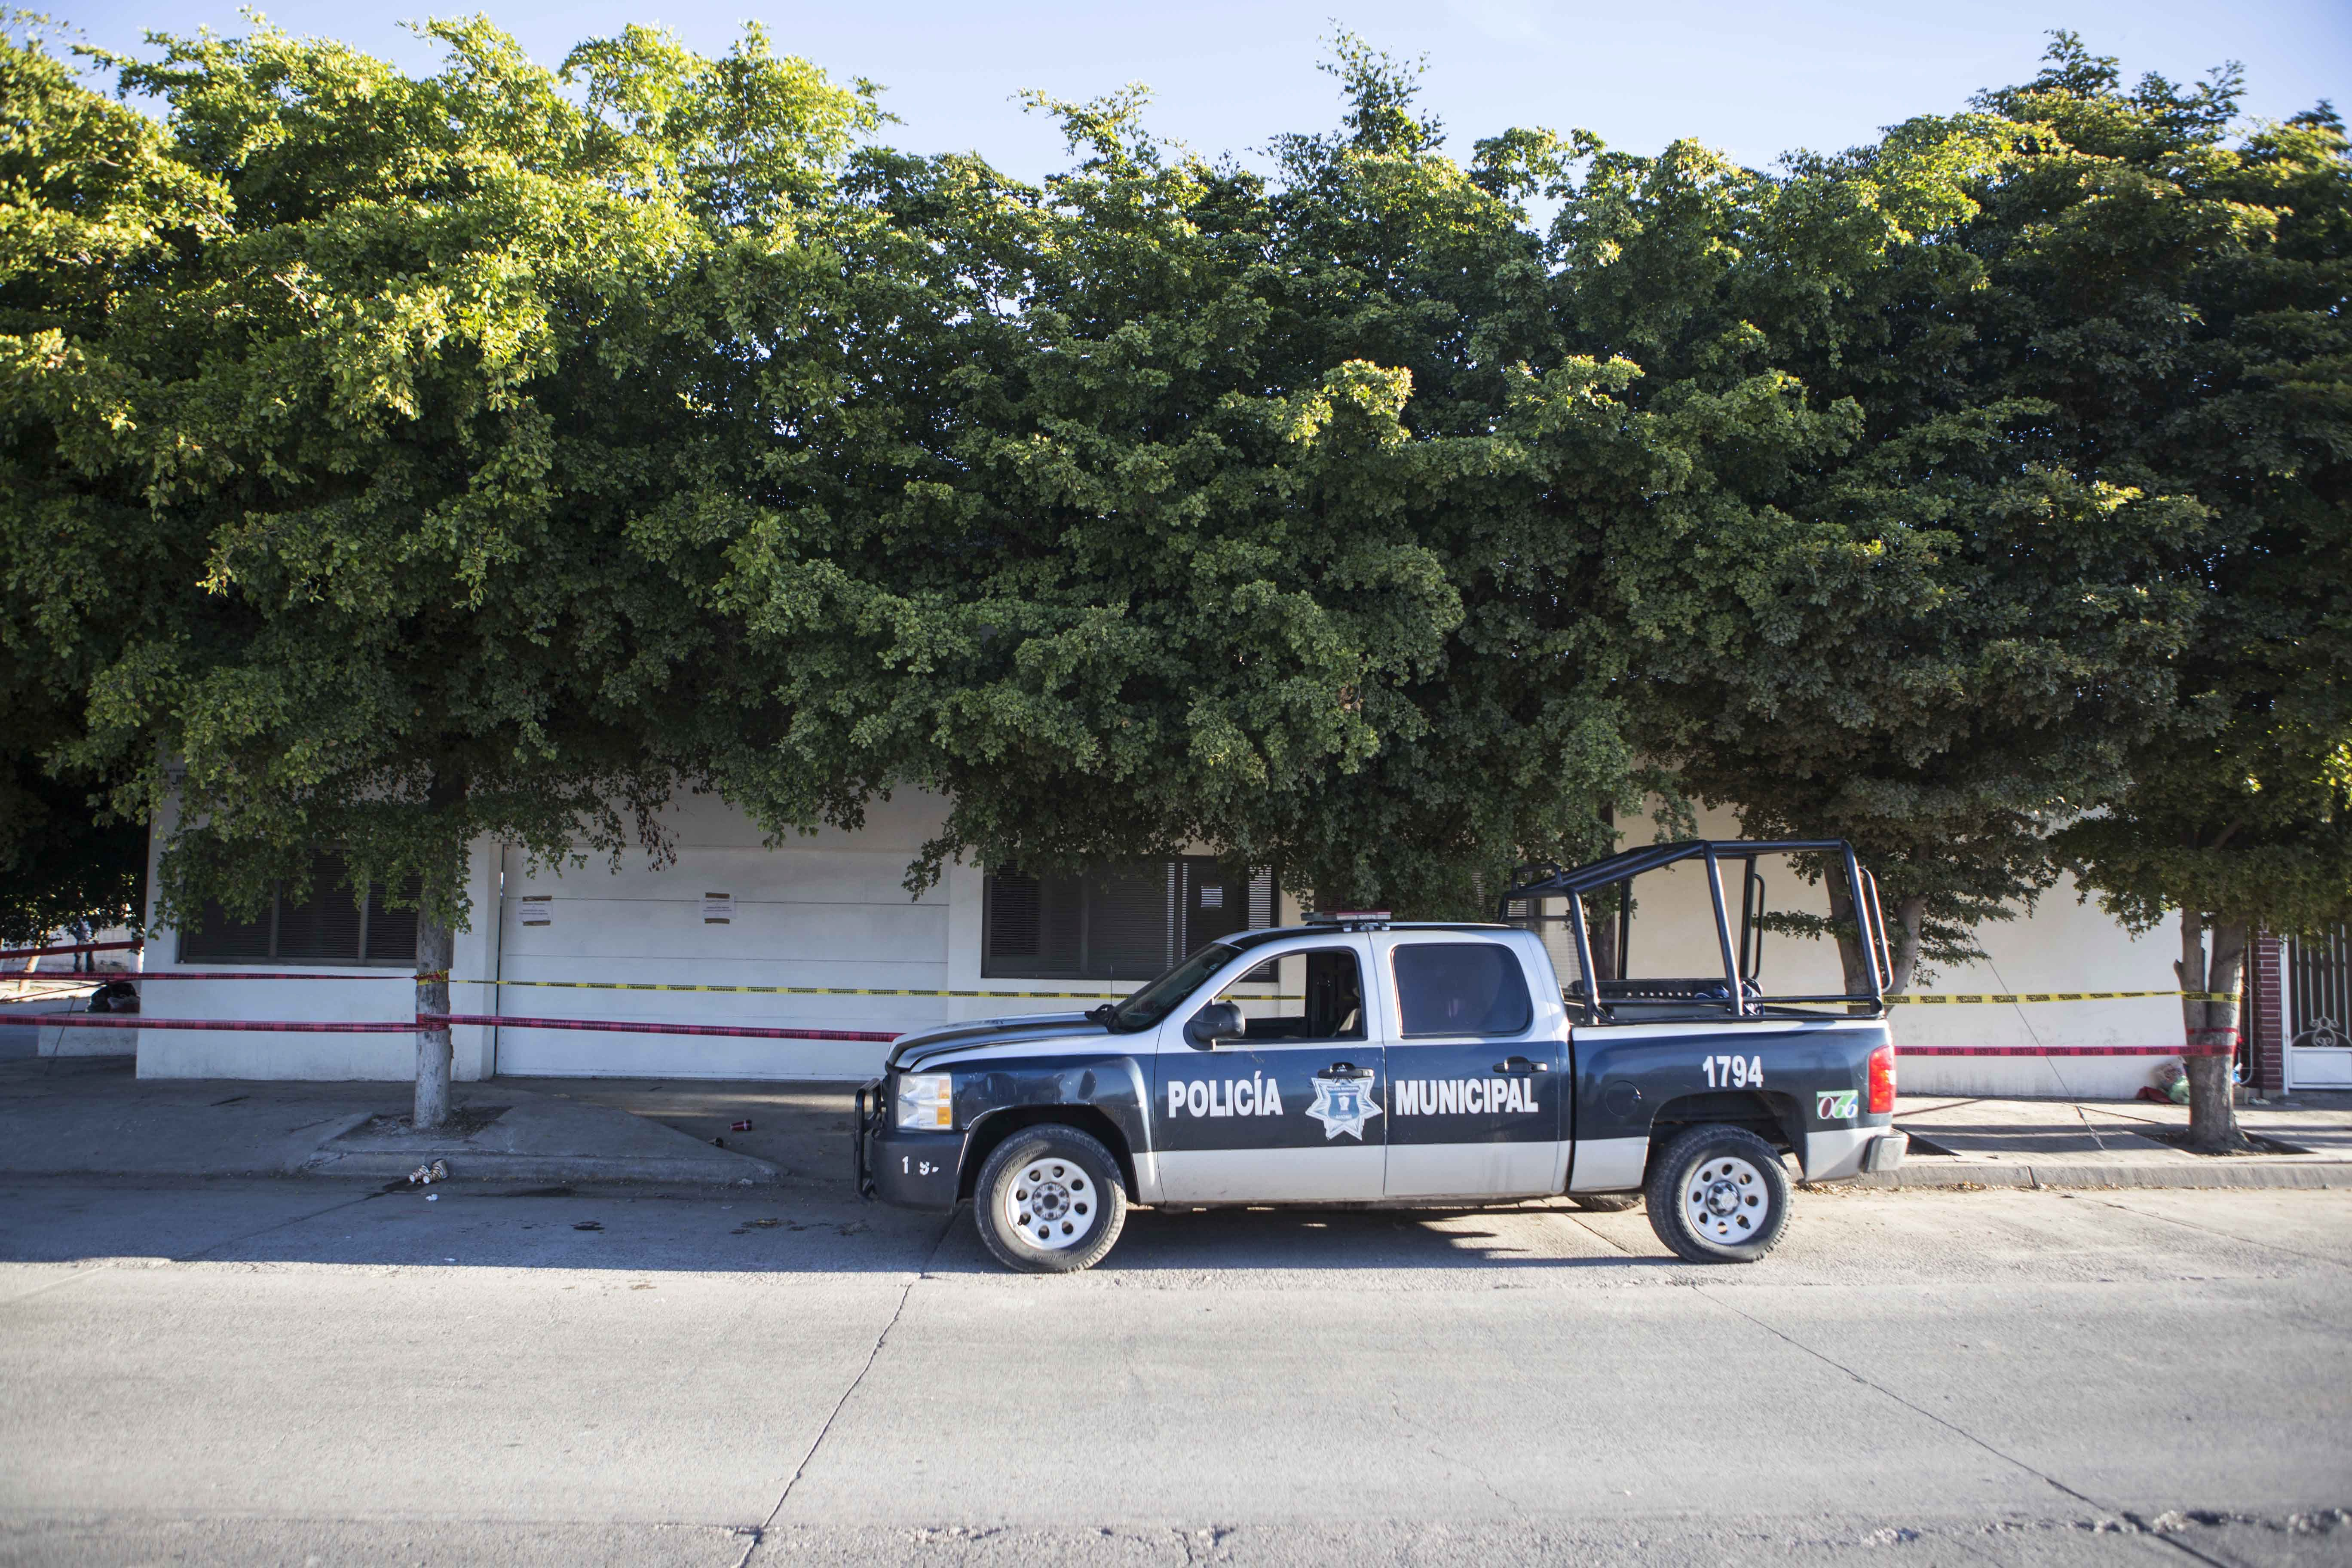 The ordinary building that housed the drug lord El Chapo